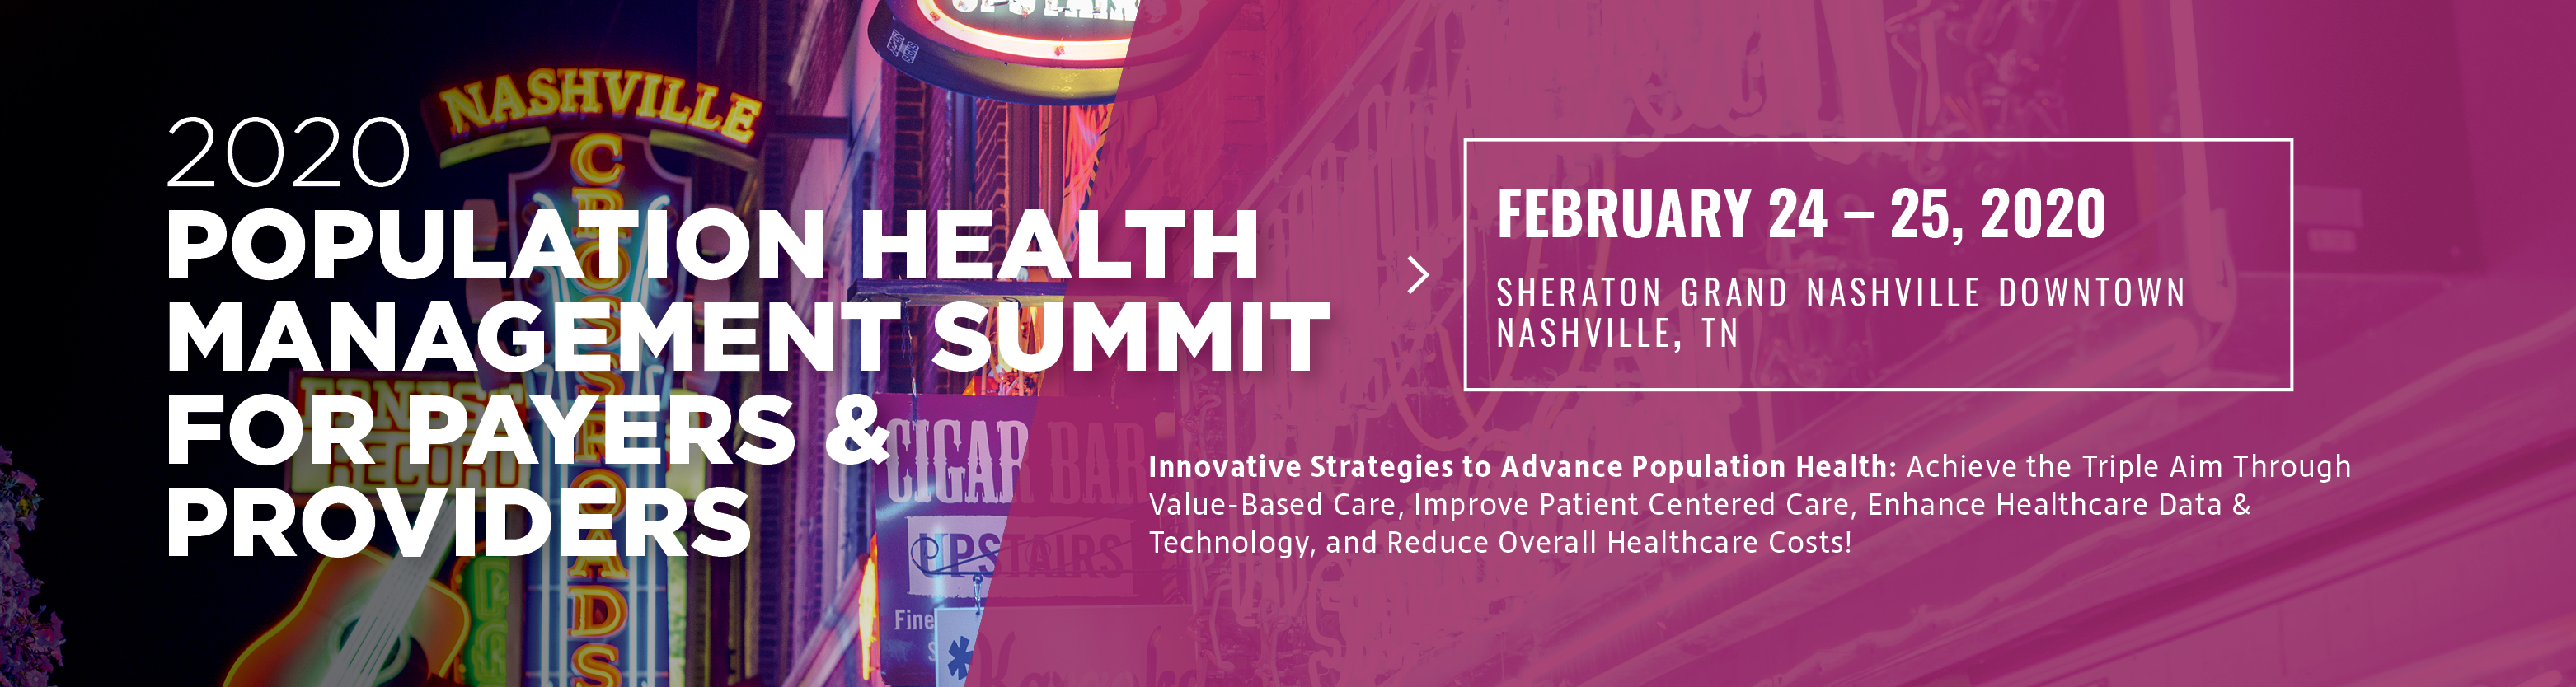 2020 Population Health Management Summit for Payers & Providers